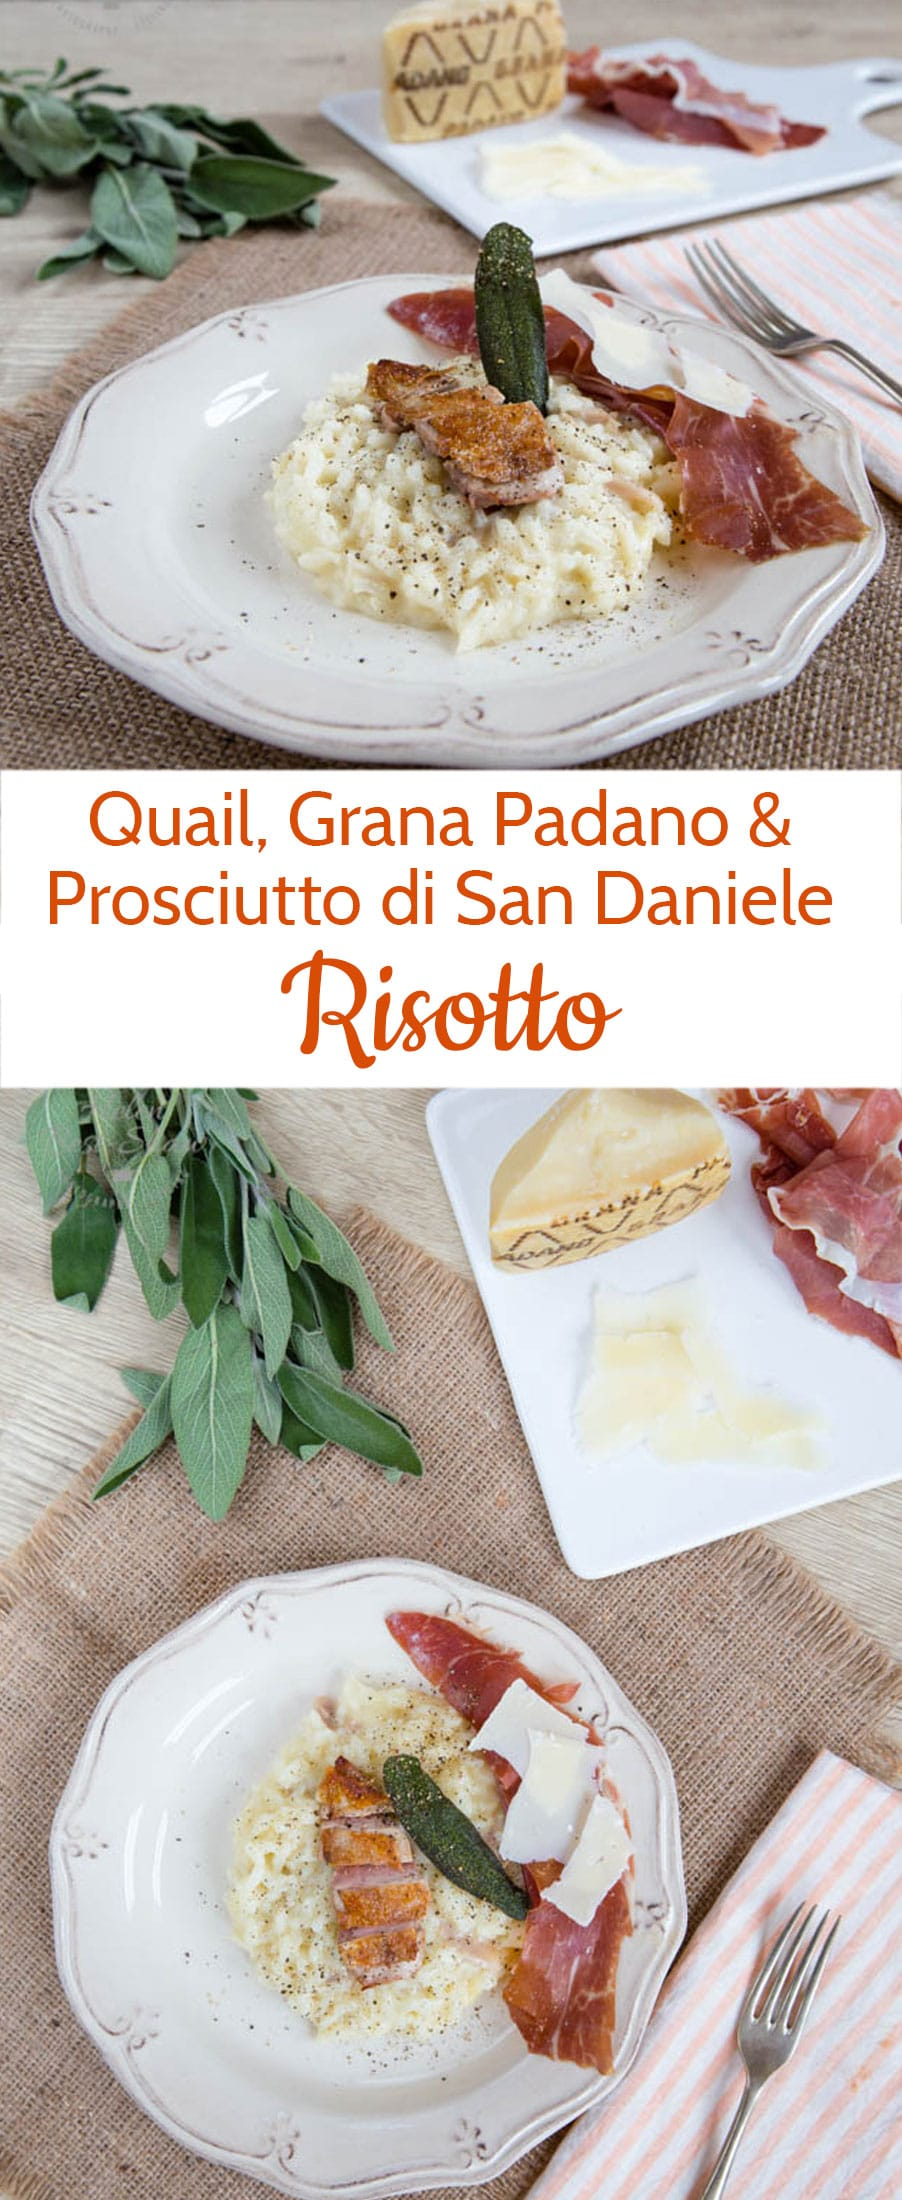 Treat yourself to something a little out of the ordinary with this quail & Grana Padano risotto with Prosciutto di San Daniele by Giorgio Locatelli